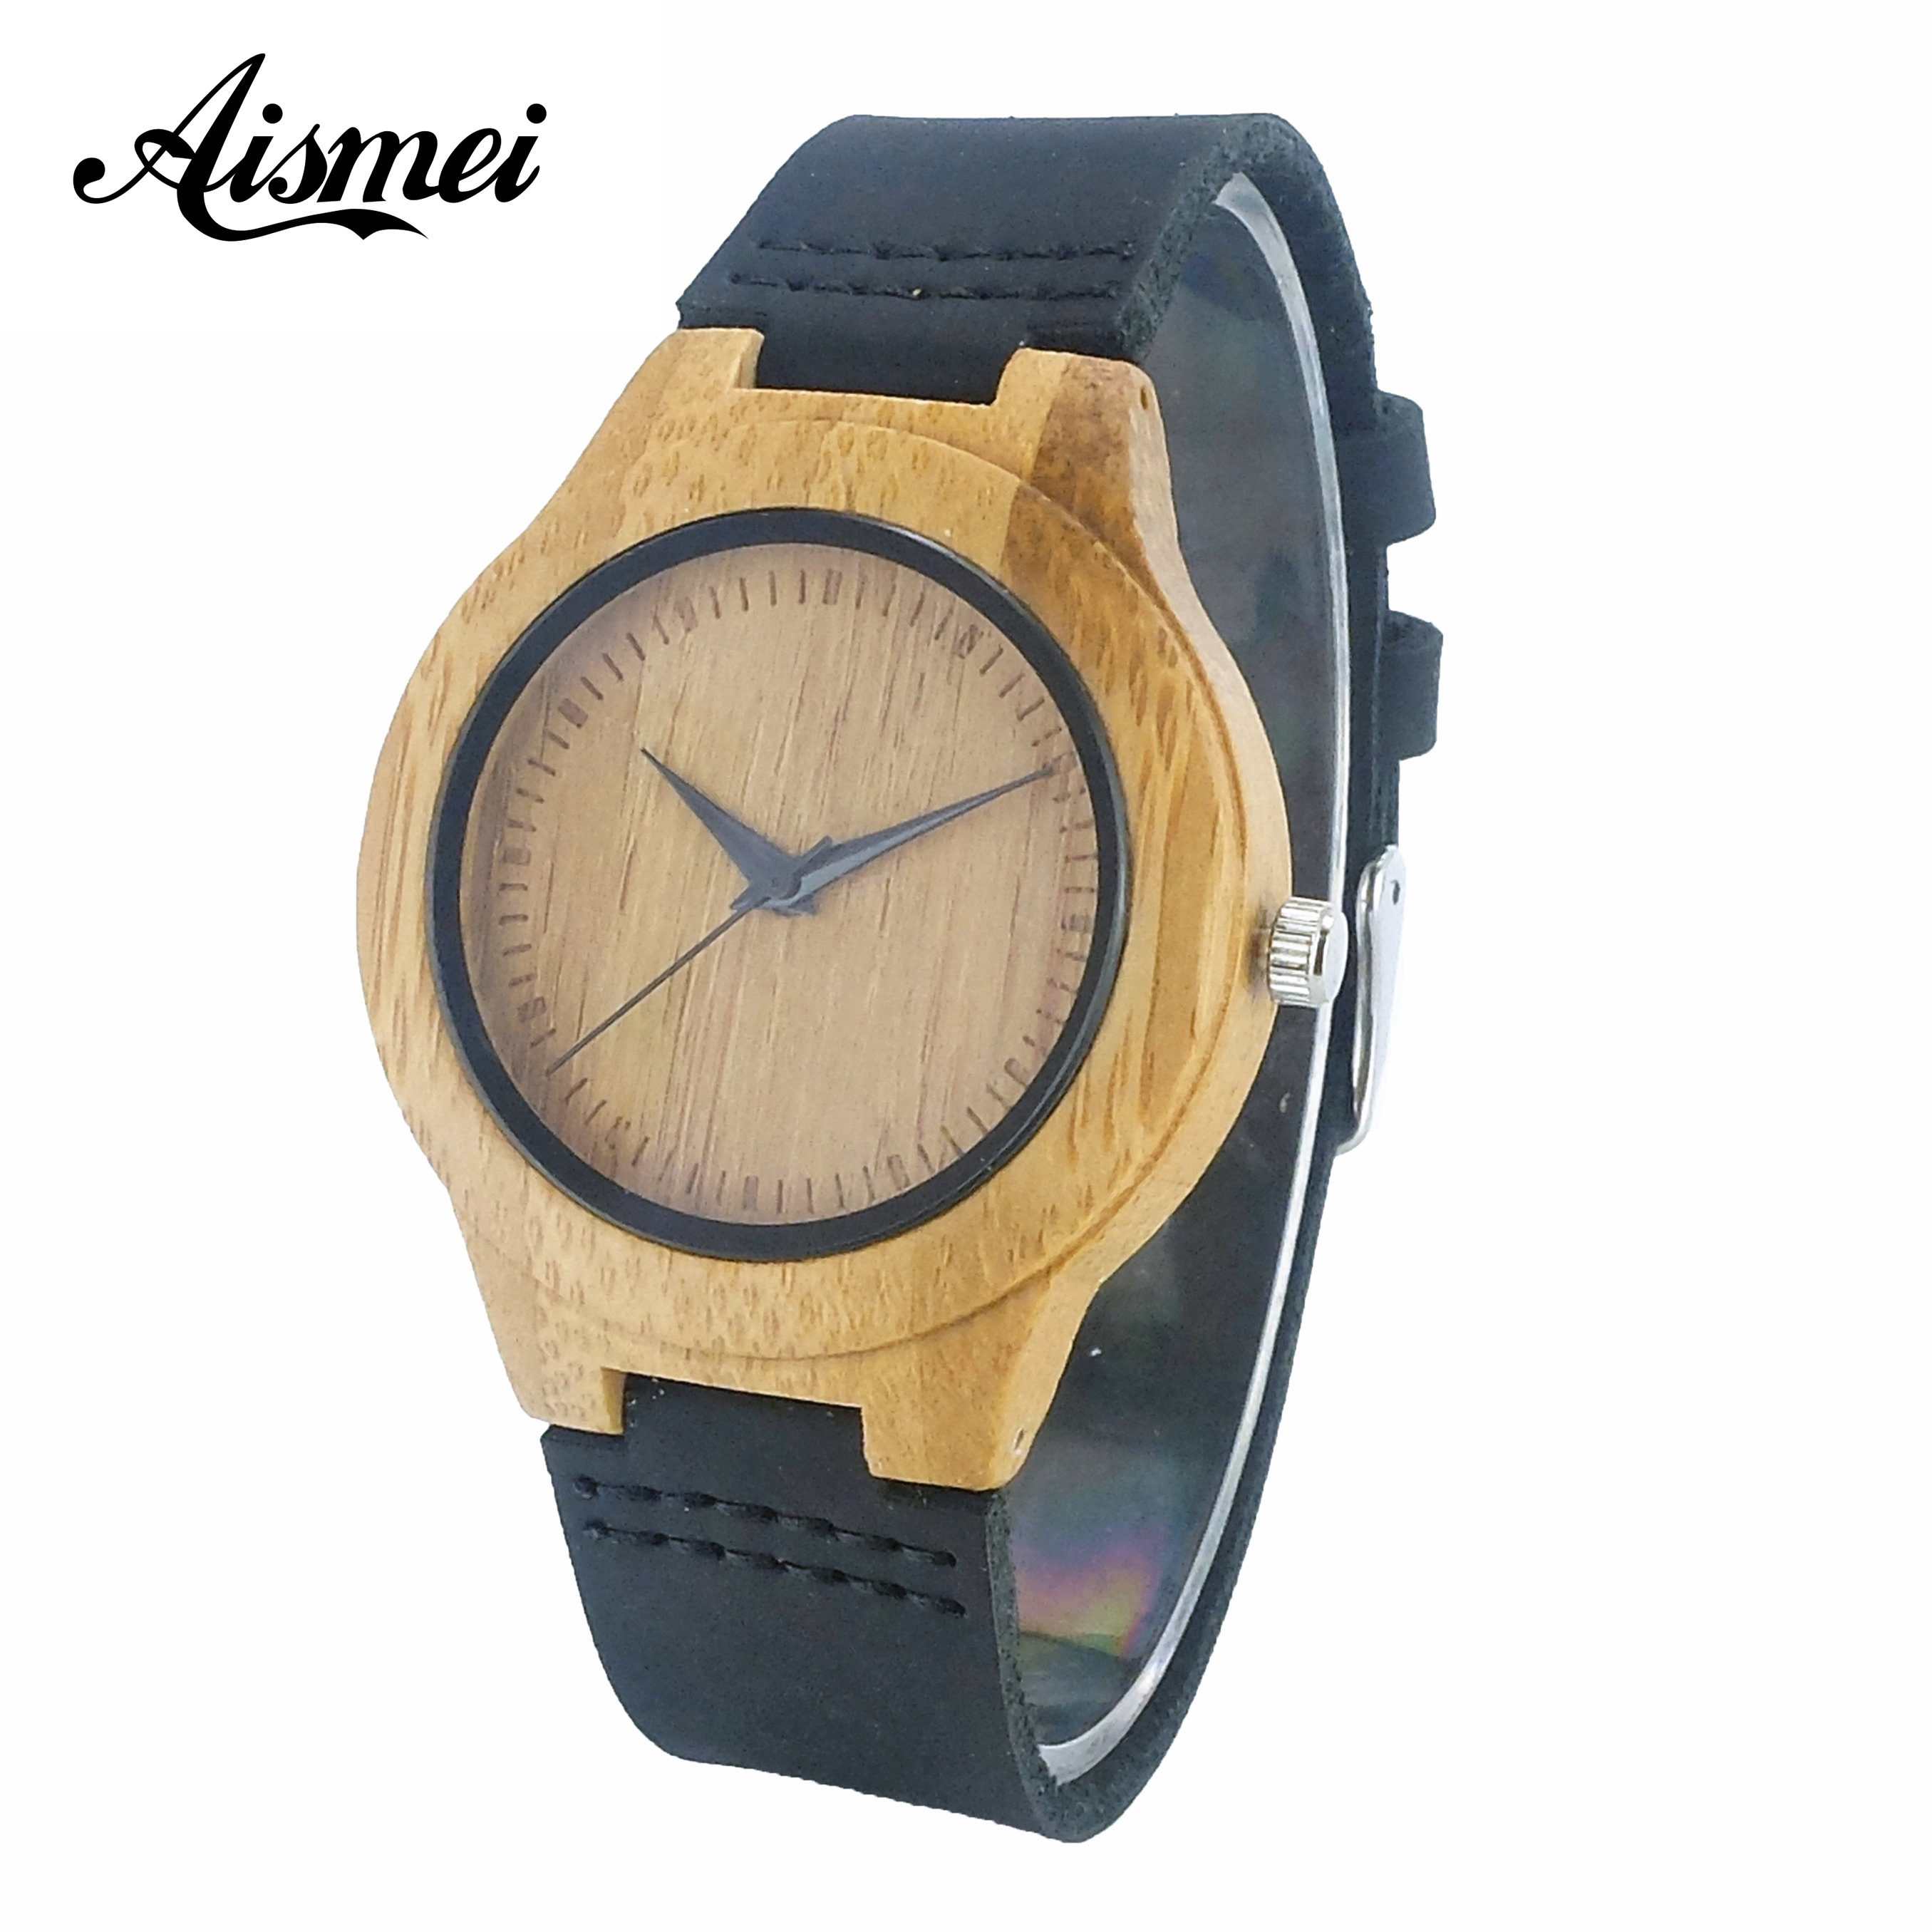 2017 Top Brand Wood Women Quartz Watch Lady Luxury Fashion Dress Clock Classic Wooden Female Wristwatch Gift relogio feminino luxury top brand guanqin watches fashion women rhinestone vintage wristwatch lady leather quartz watch female dress clock hours